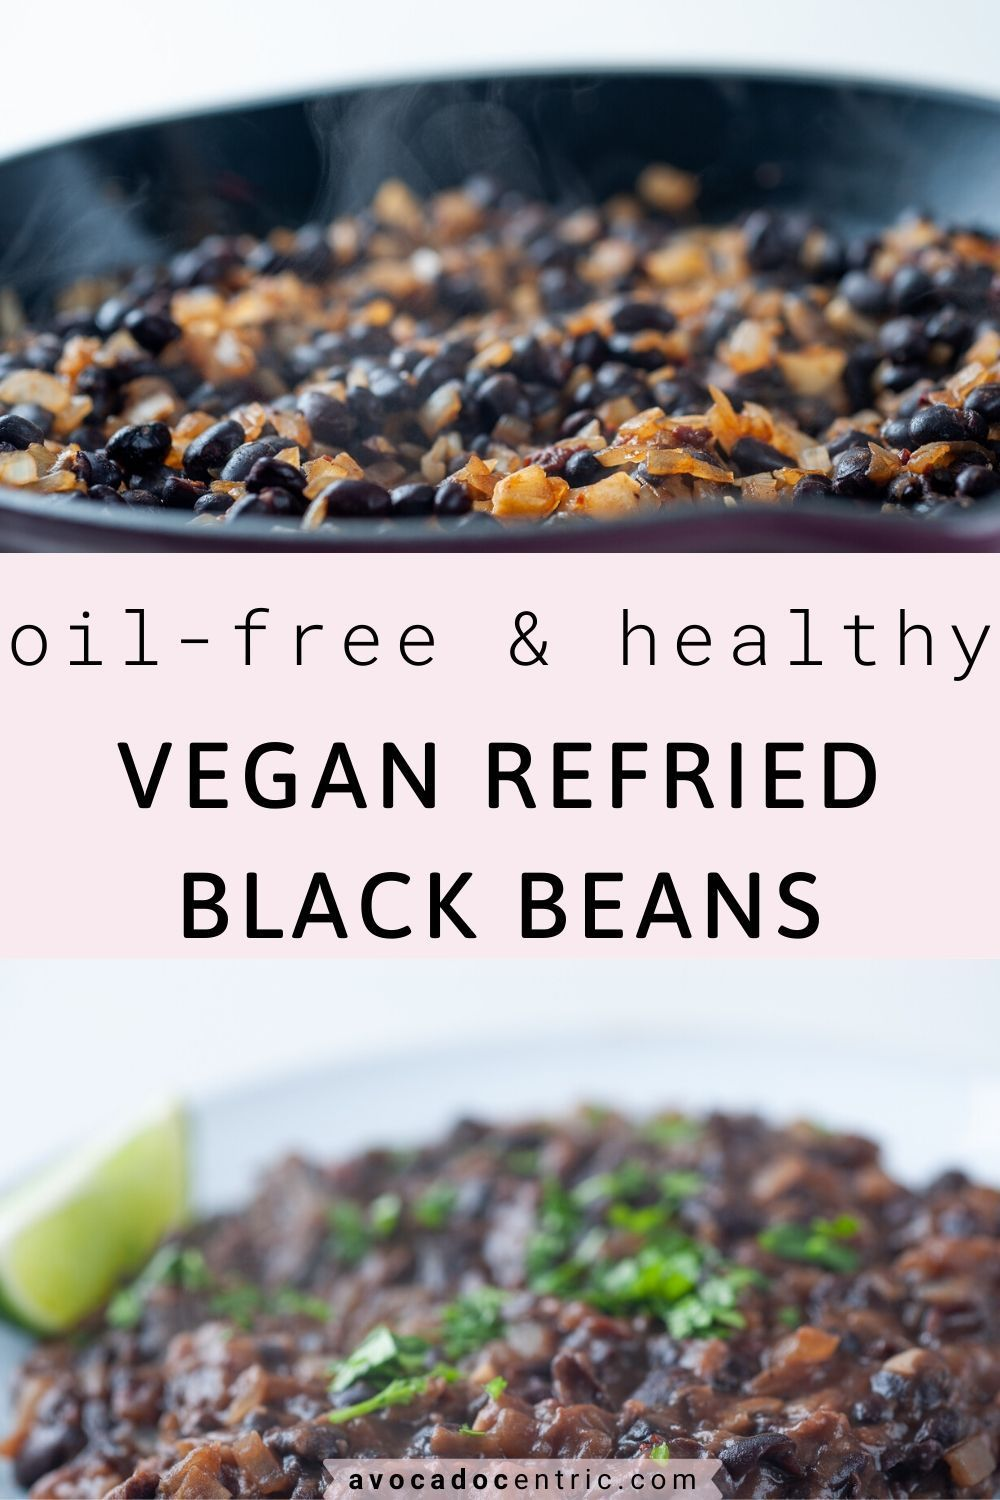 Refried Black Beans Recipe Vegan Oil Free Avocado Centric Recipe Vegan Refried Black Beans Oil Free Refried Beans Plant Based Diet Recipes